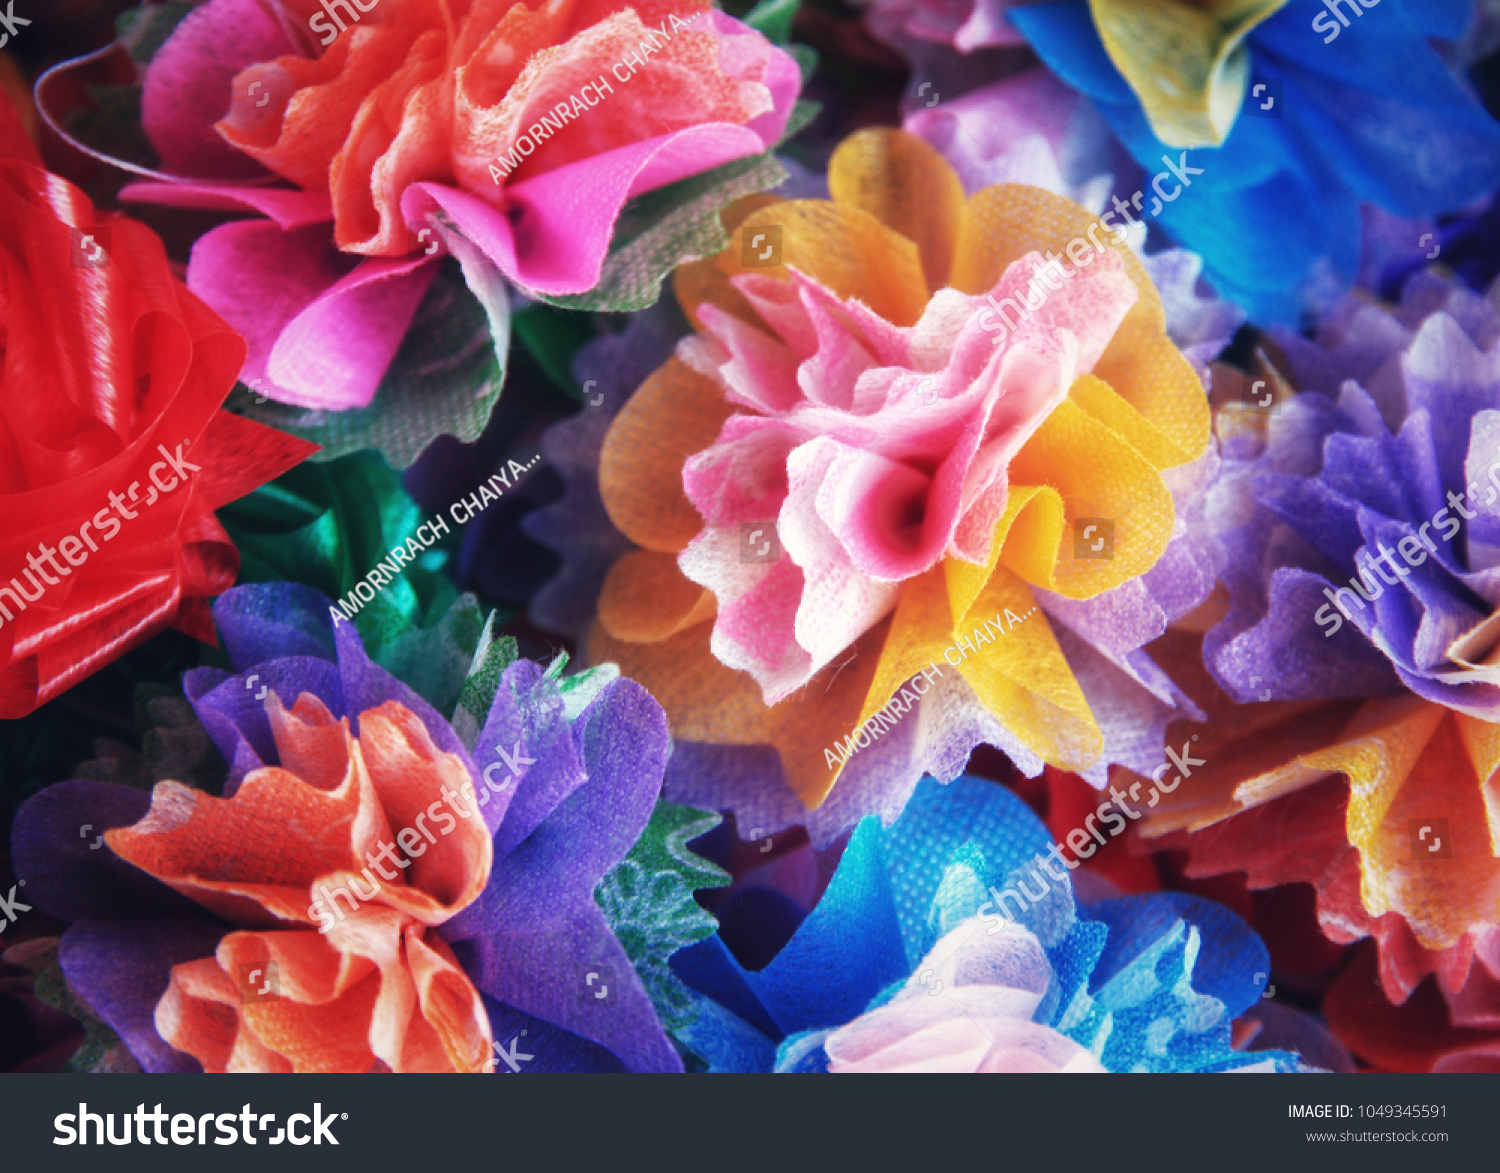 Close colorful ribbon flowers coins folding stock photo royalty close up colorful ribbon flowers and coins folding with mulberry paper for giving alms to make izmirmasajfo